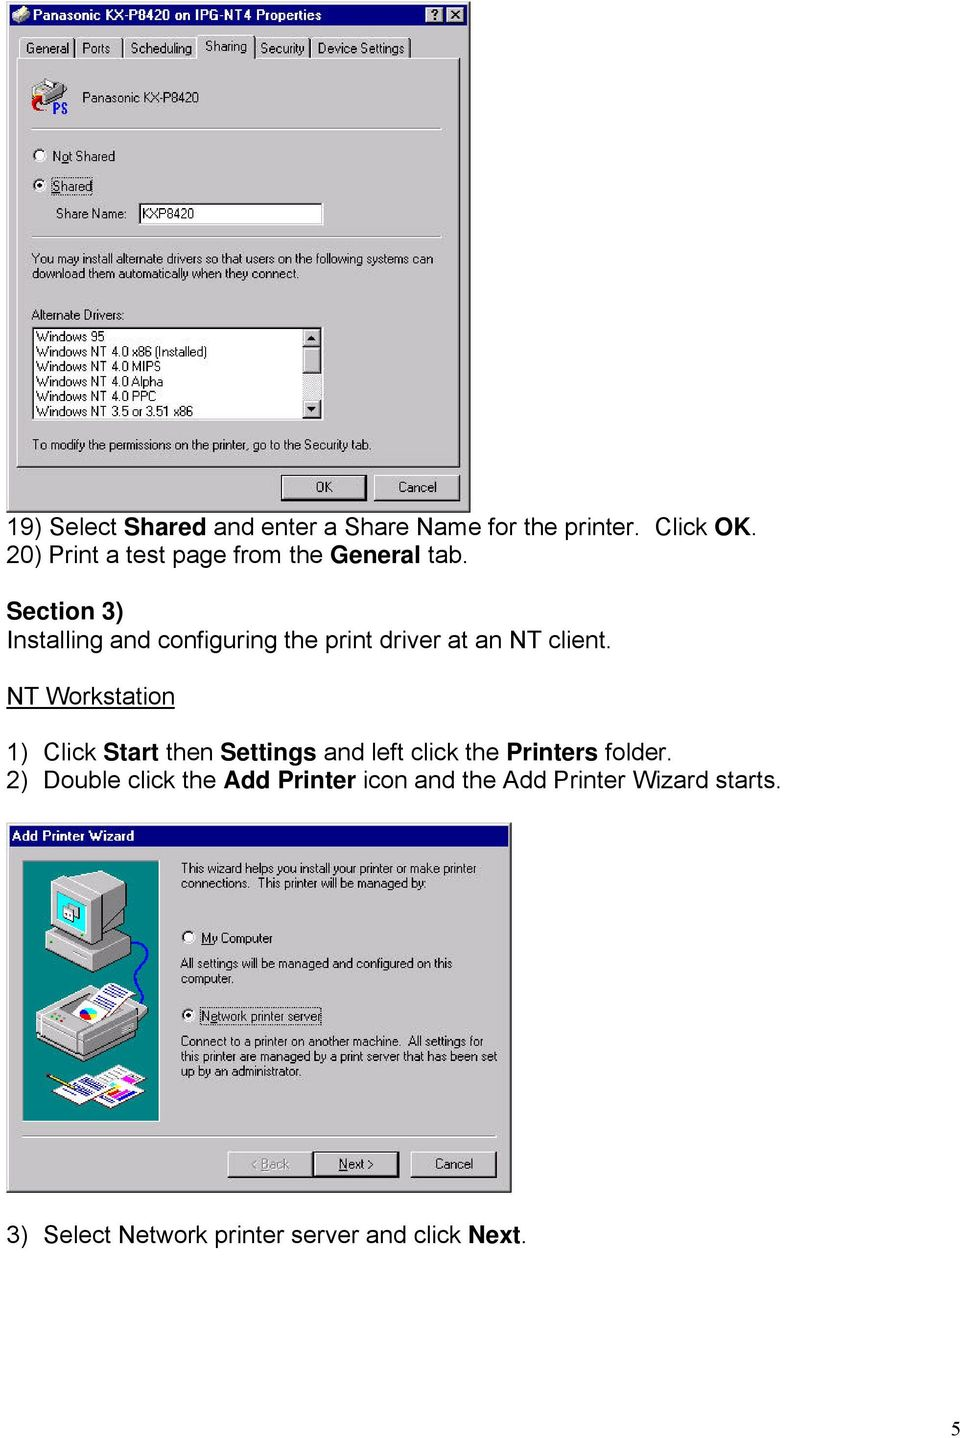 Section 3) Installing and configuring the print driver at an NT client.